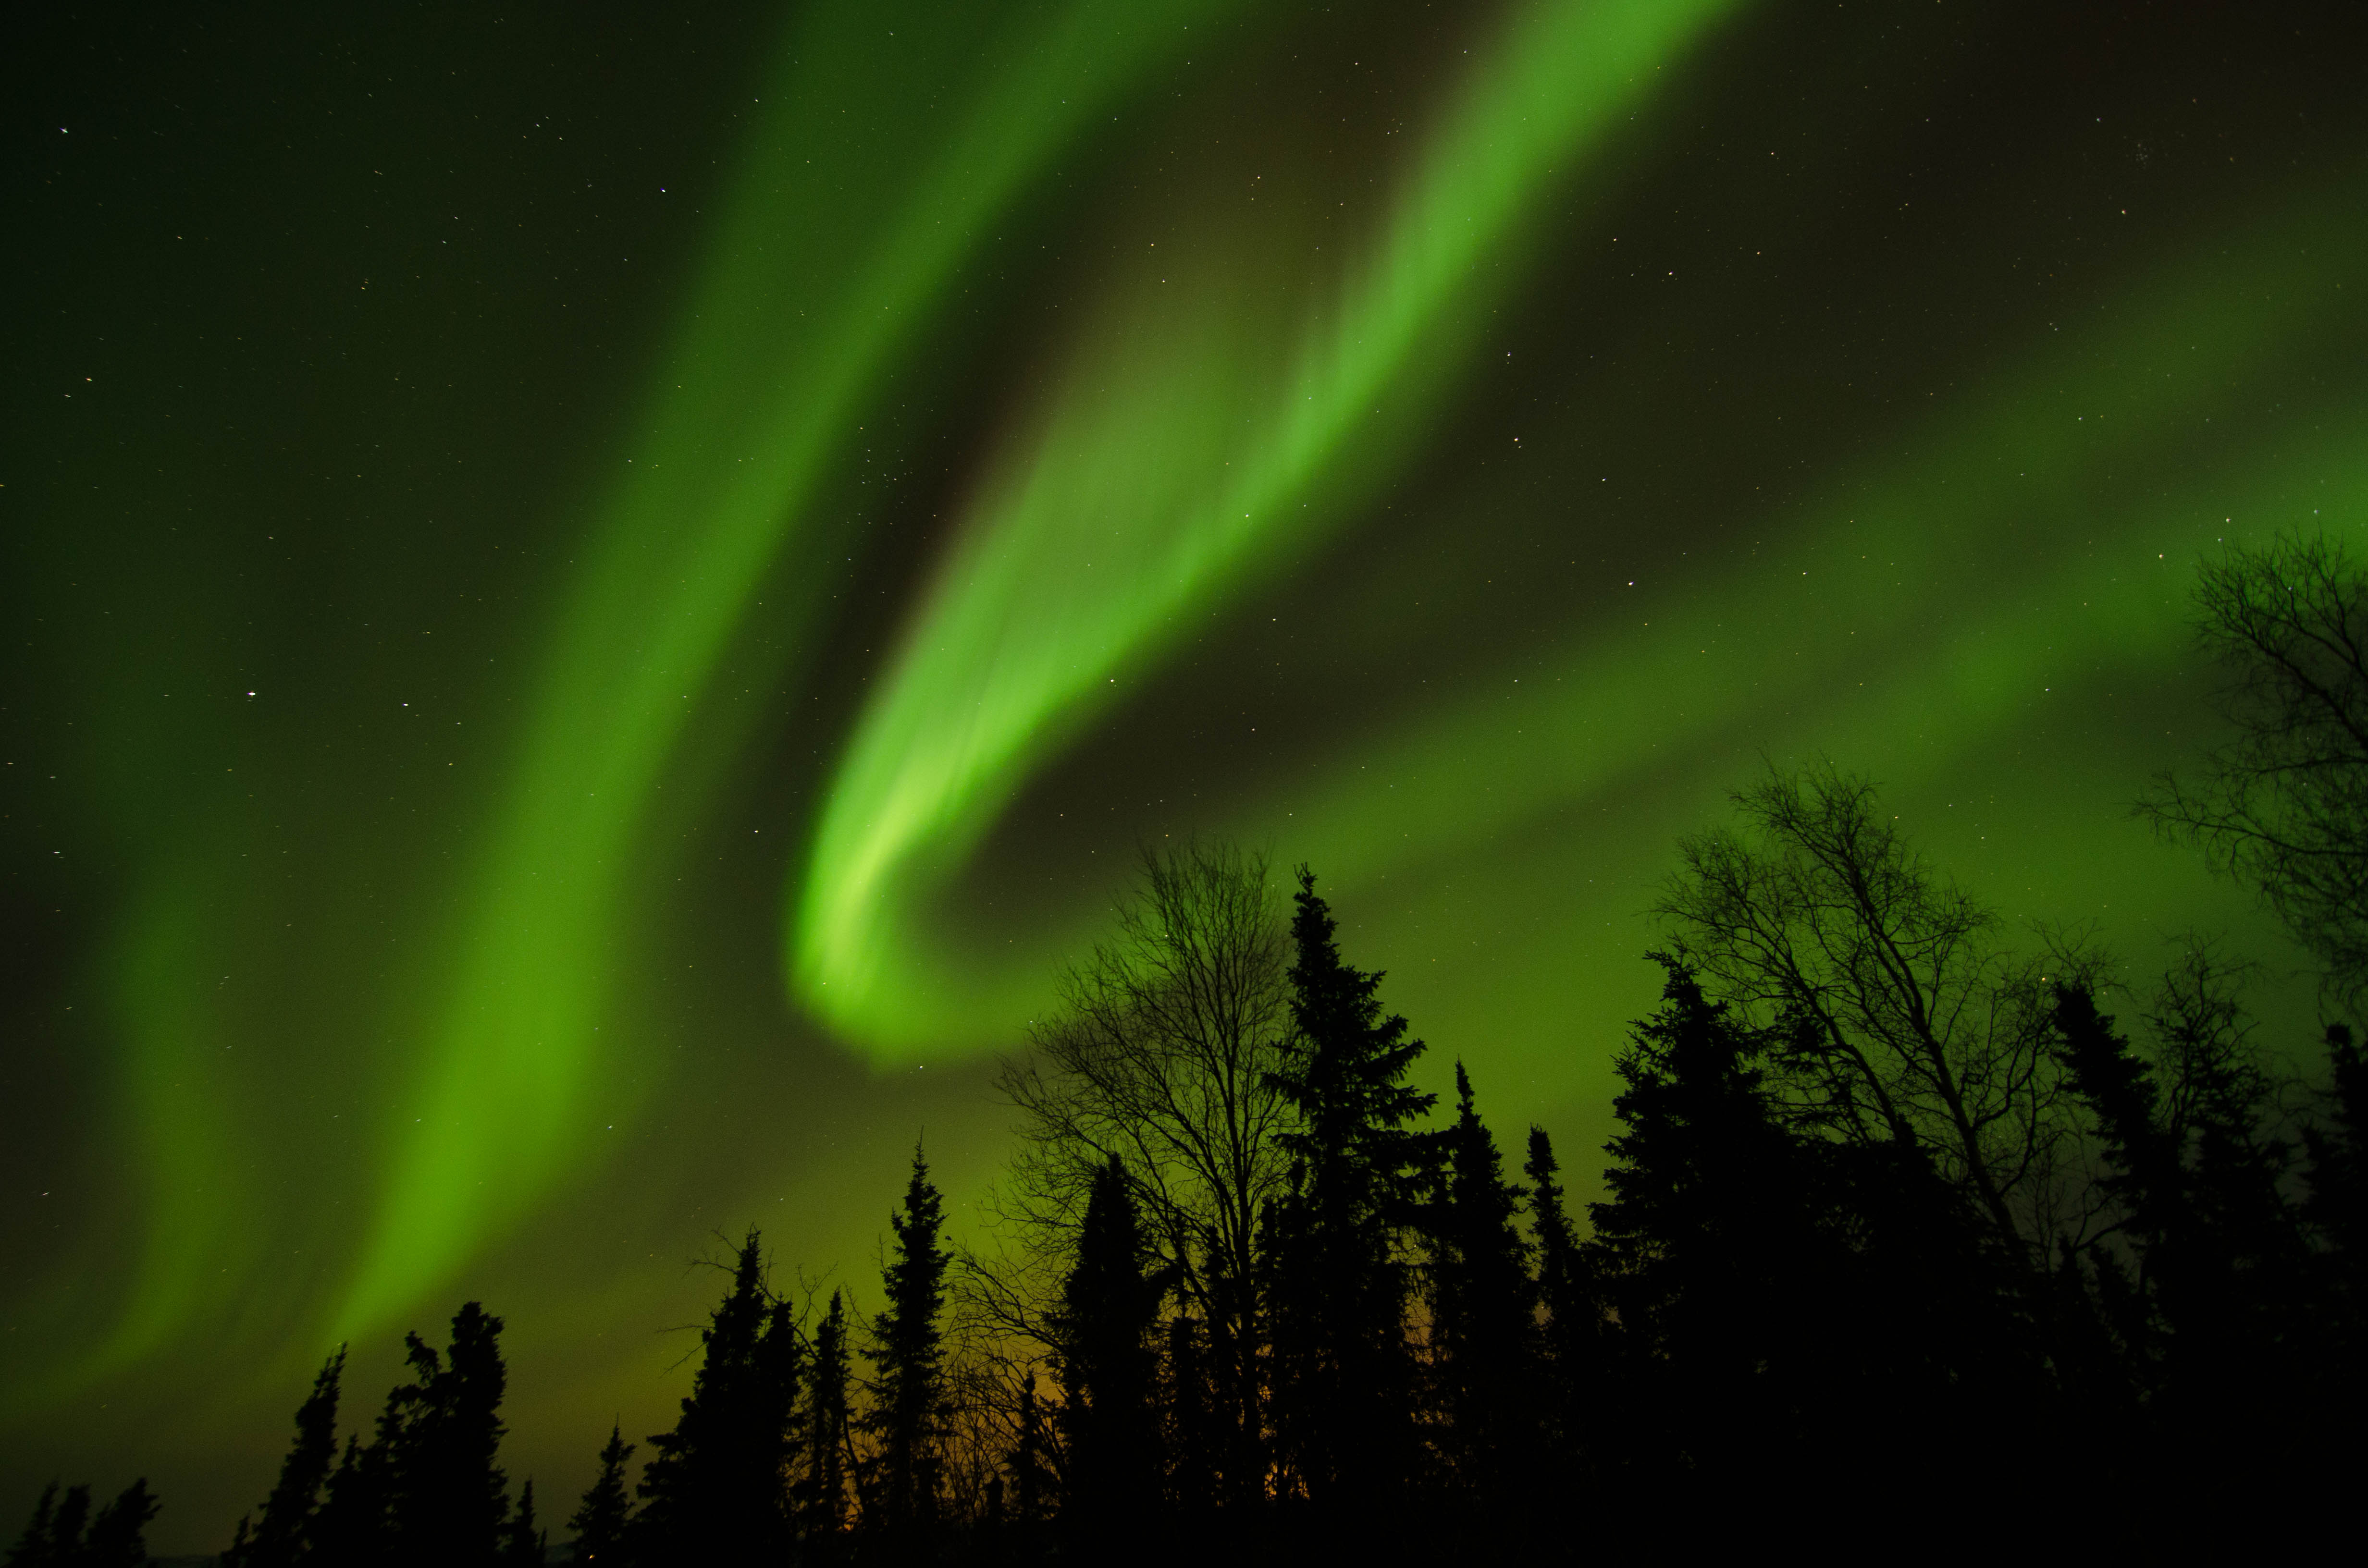 File:The Northern Lights Just North Of Fairbanks, Alaska